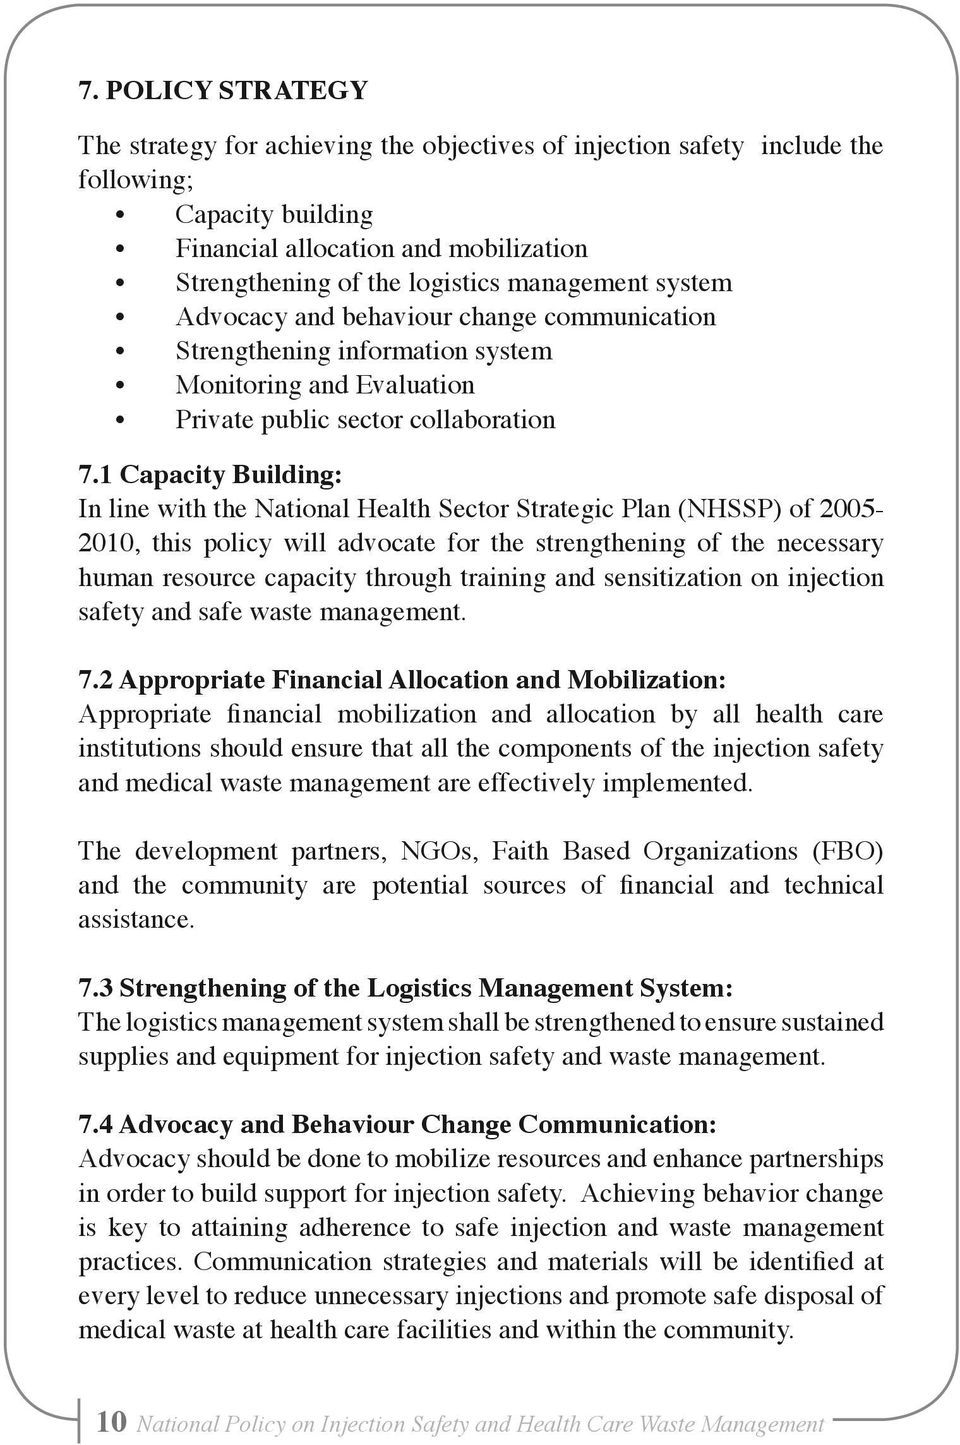 1 Capacity Building: In line with the National Health Sector Strategic Plan (NHSSP) of 2005-2010, this policy will advocate for the strengthening of the necessary human resource capacity through